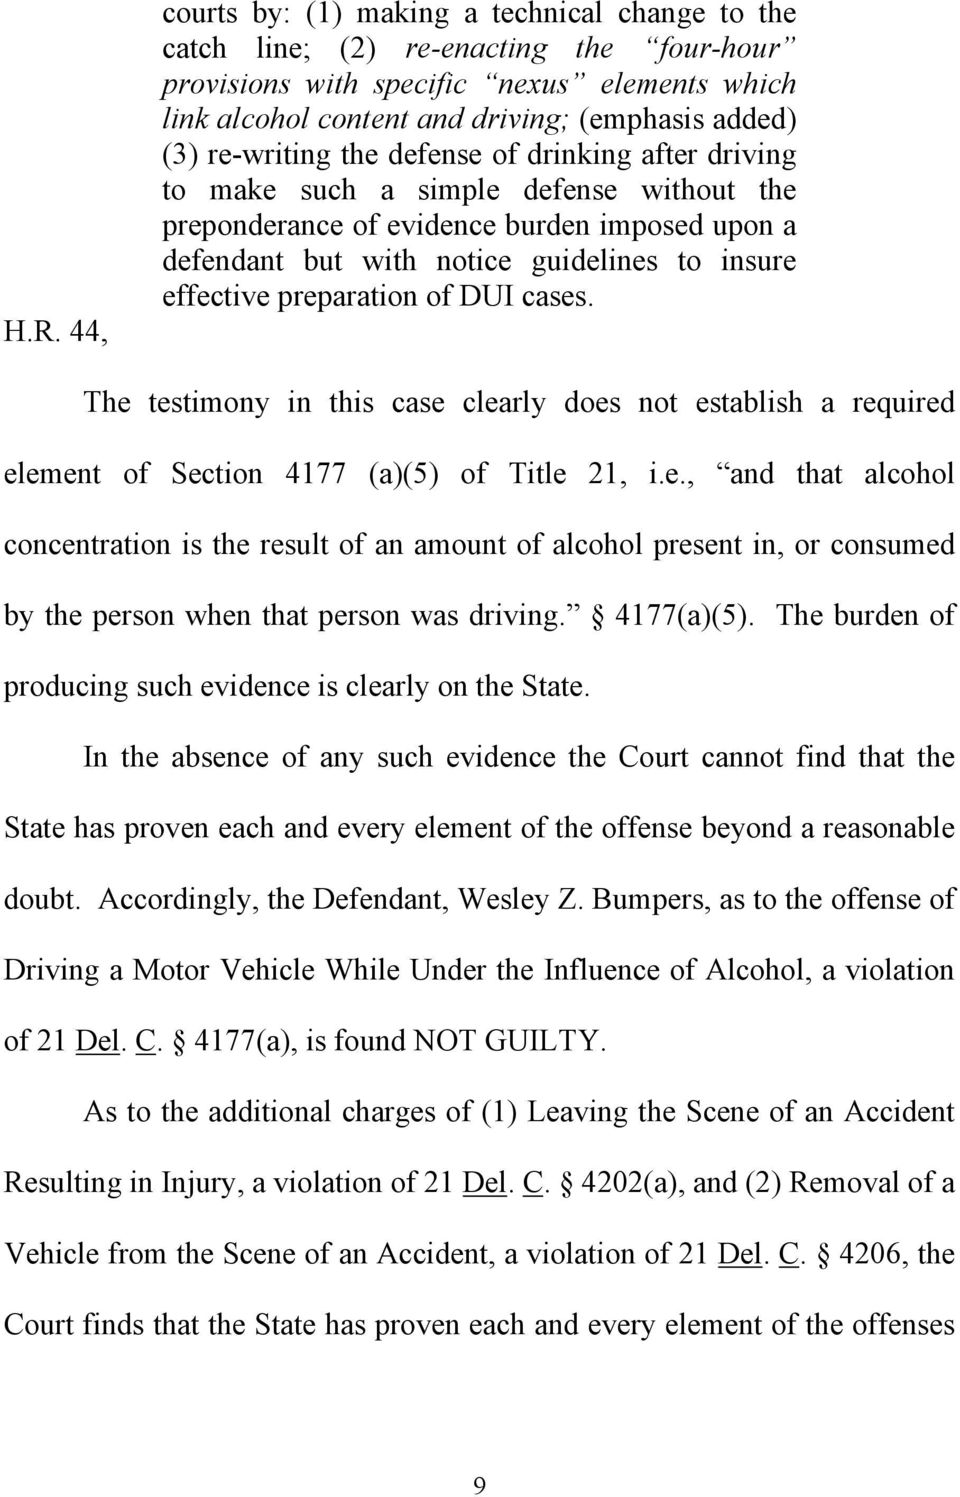 preparation of DUI cases. The testimony in this case clearly does not establish a required element of Section 4177 (a)(5) of Title 21, i.e., and that alcohol concentration is the result of an amount of alcohol present in, or consumed by the person when that person was driving.